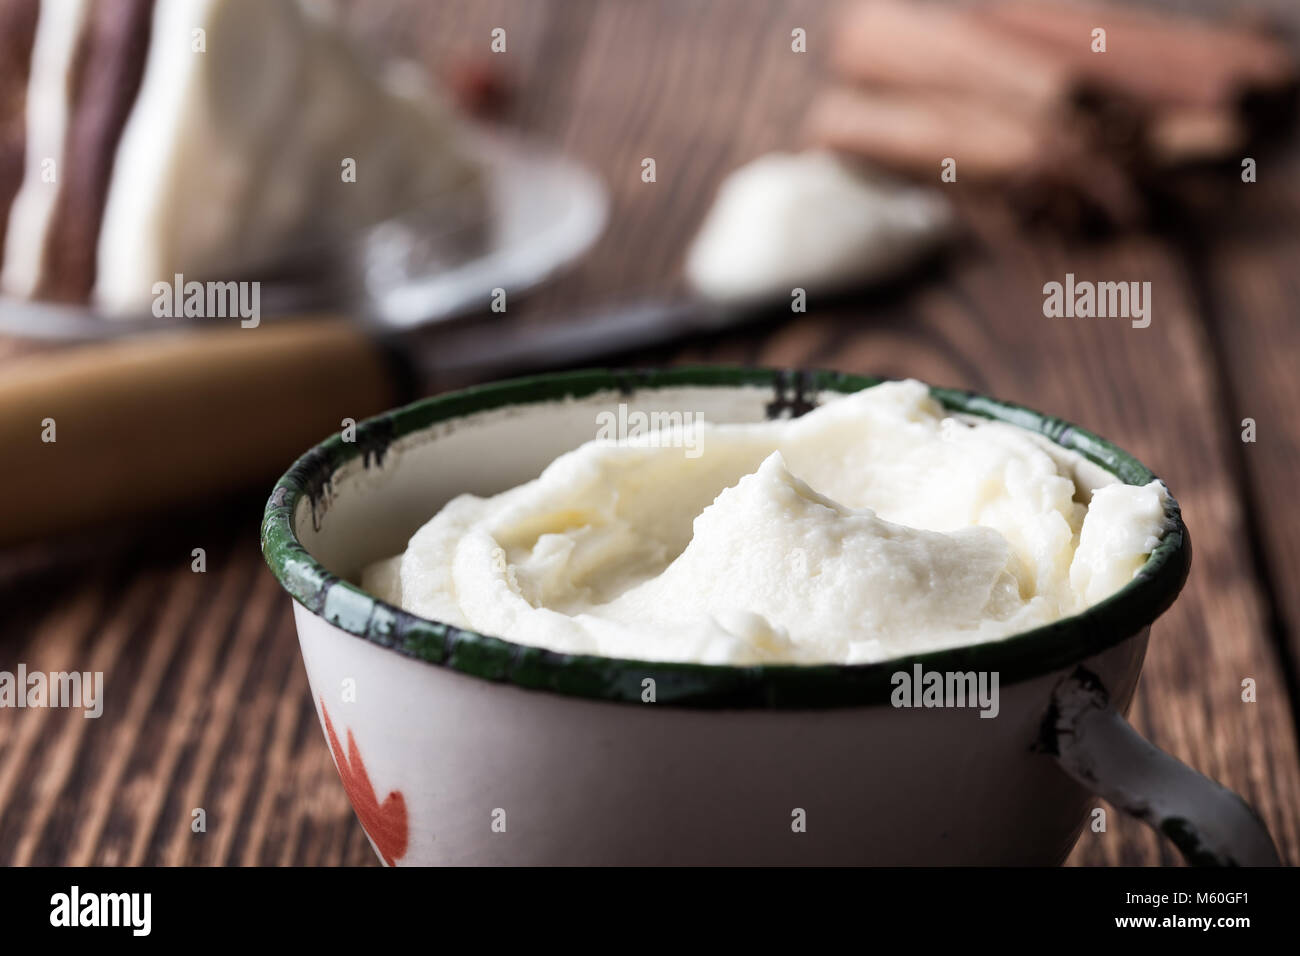 Homemade cream cheese frosting in rural mug on rustic wooden table ready to use - Stock Image